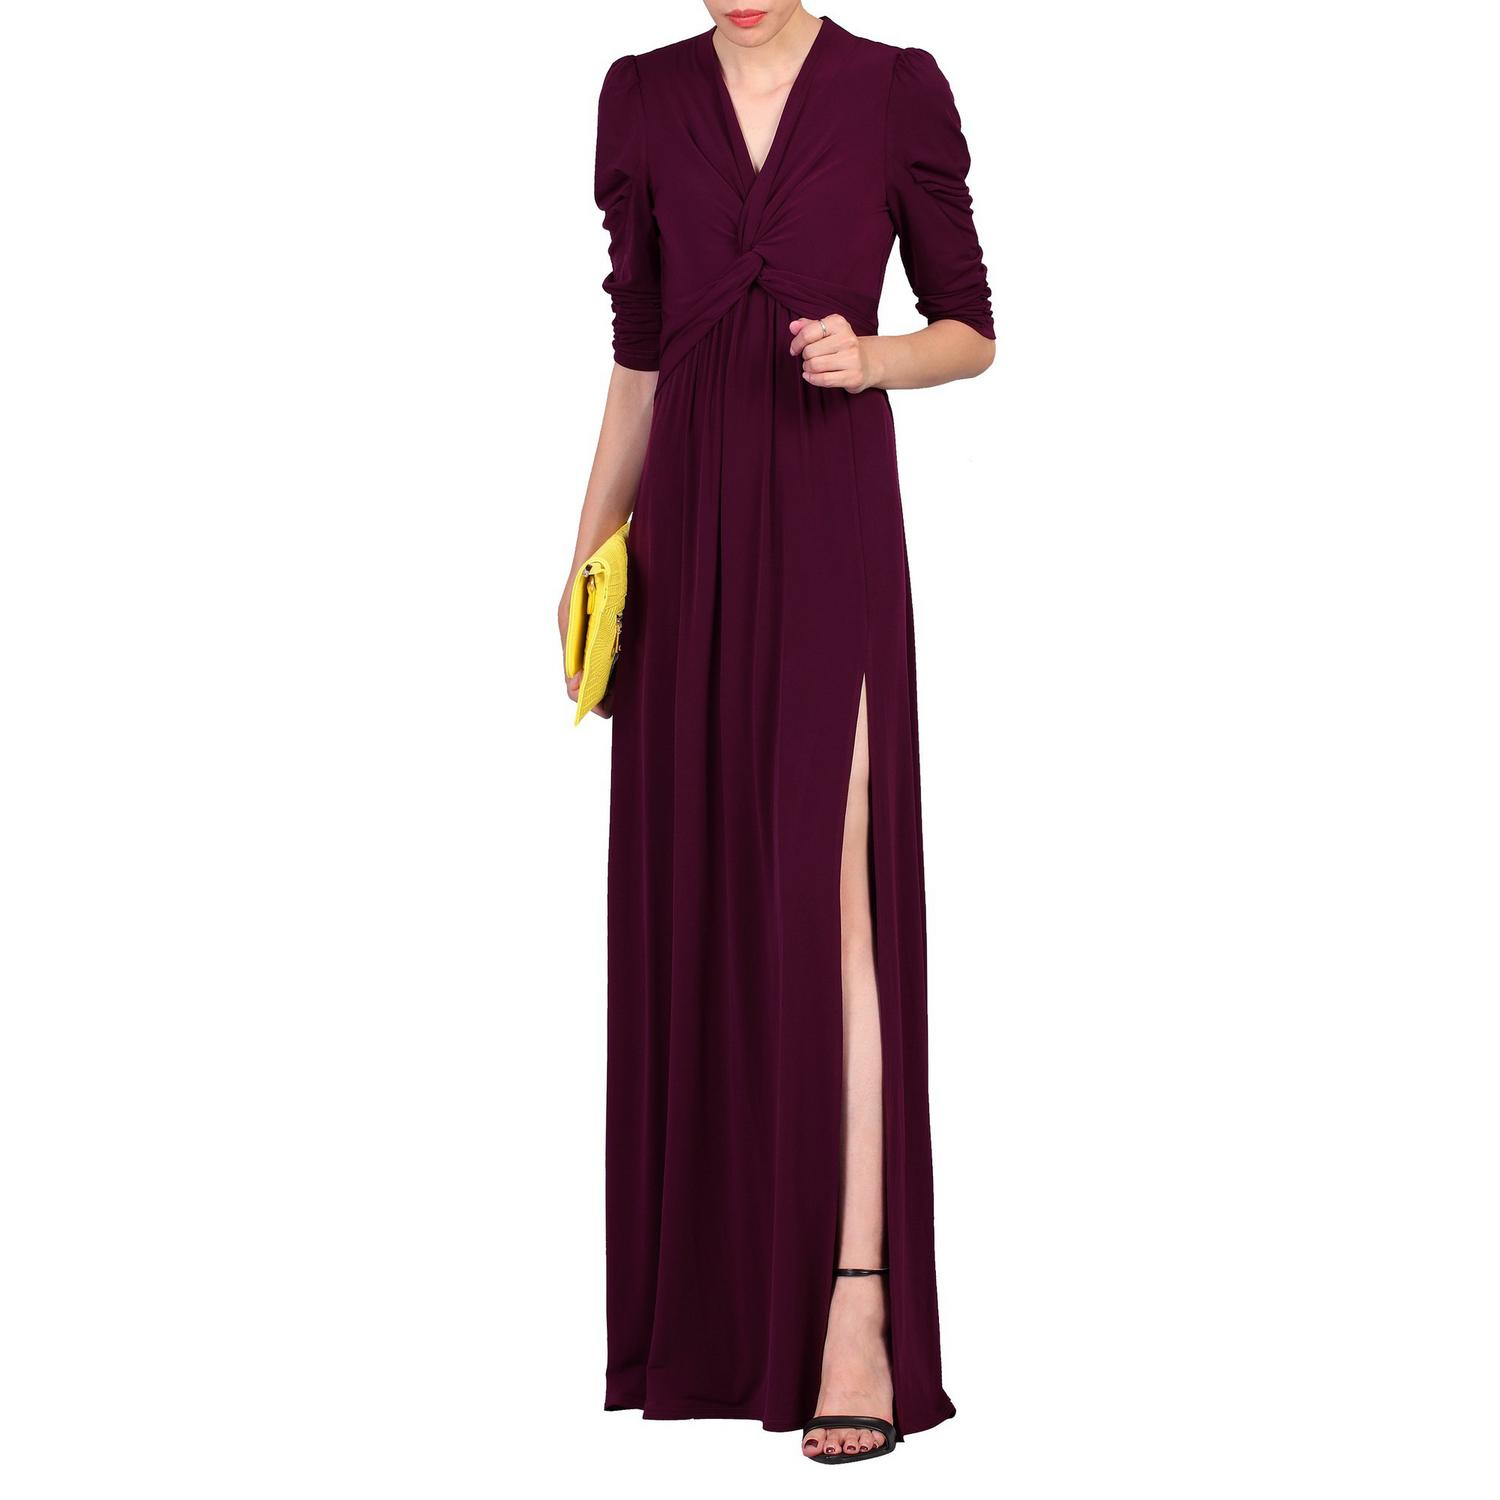 long dresses with slits on the side